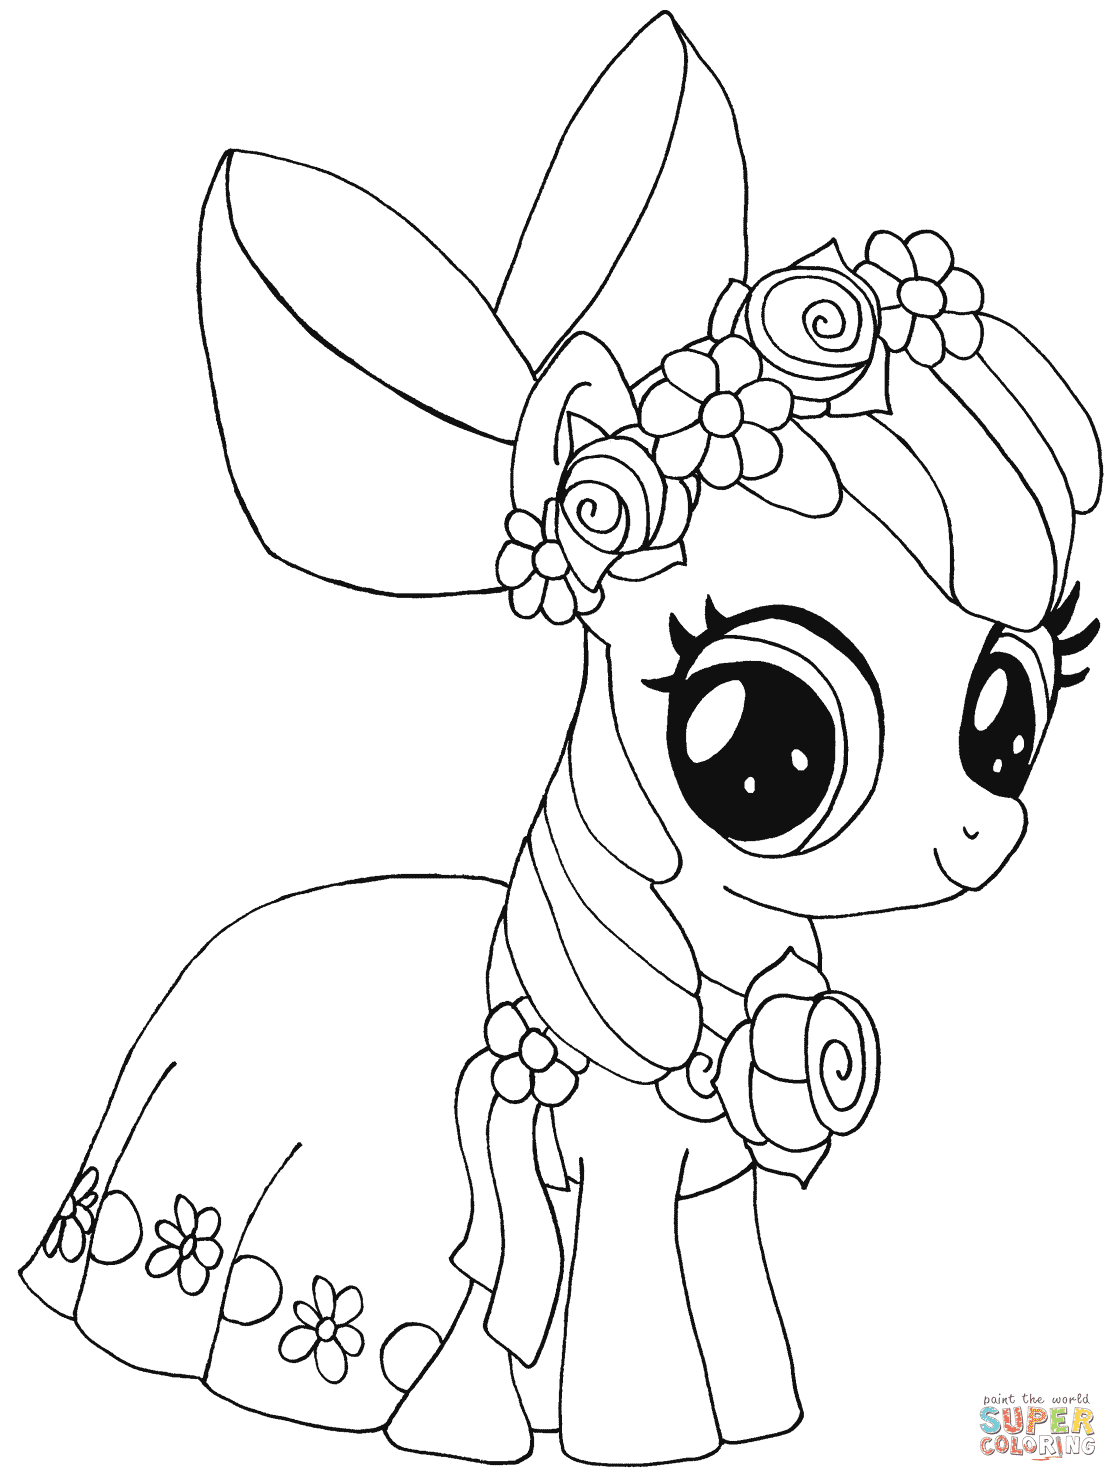 980 Top Colouring In Pages My Little Pony For Free